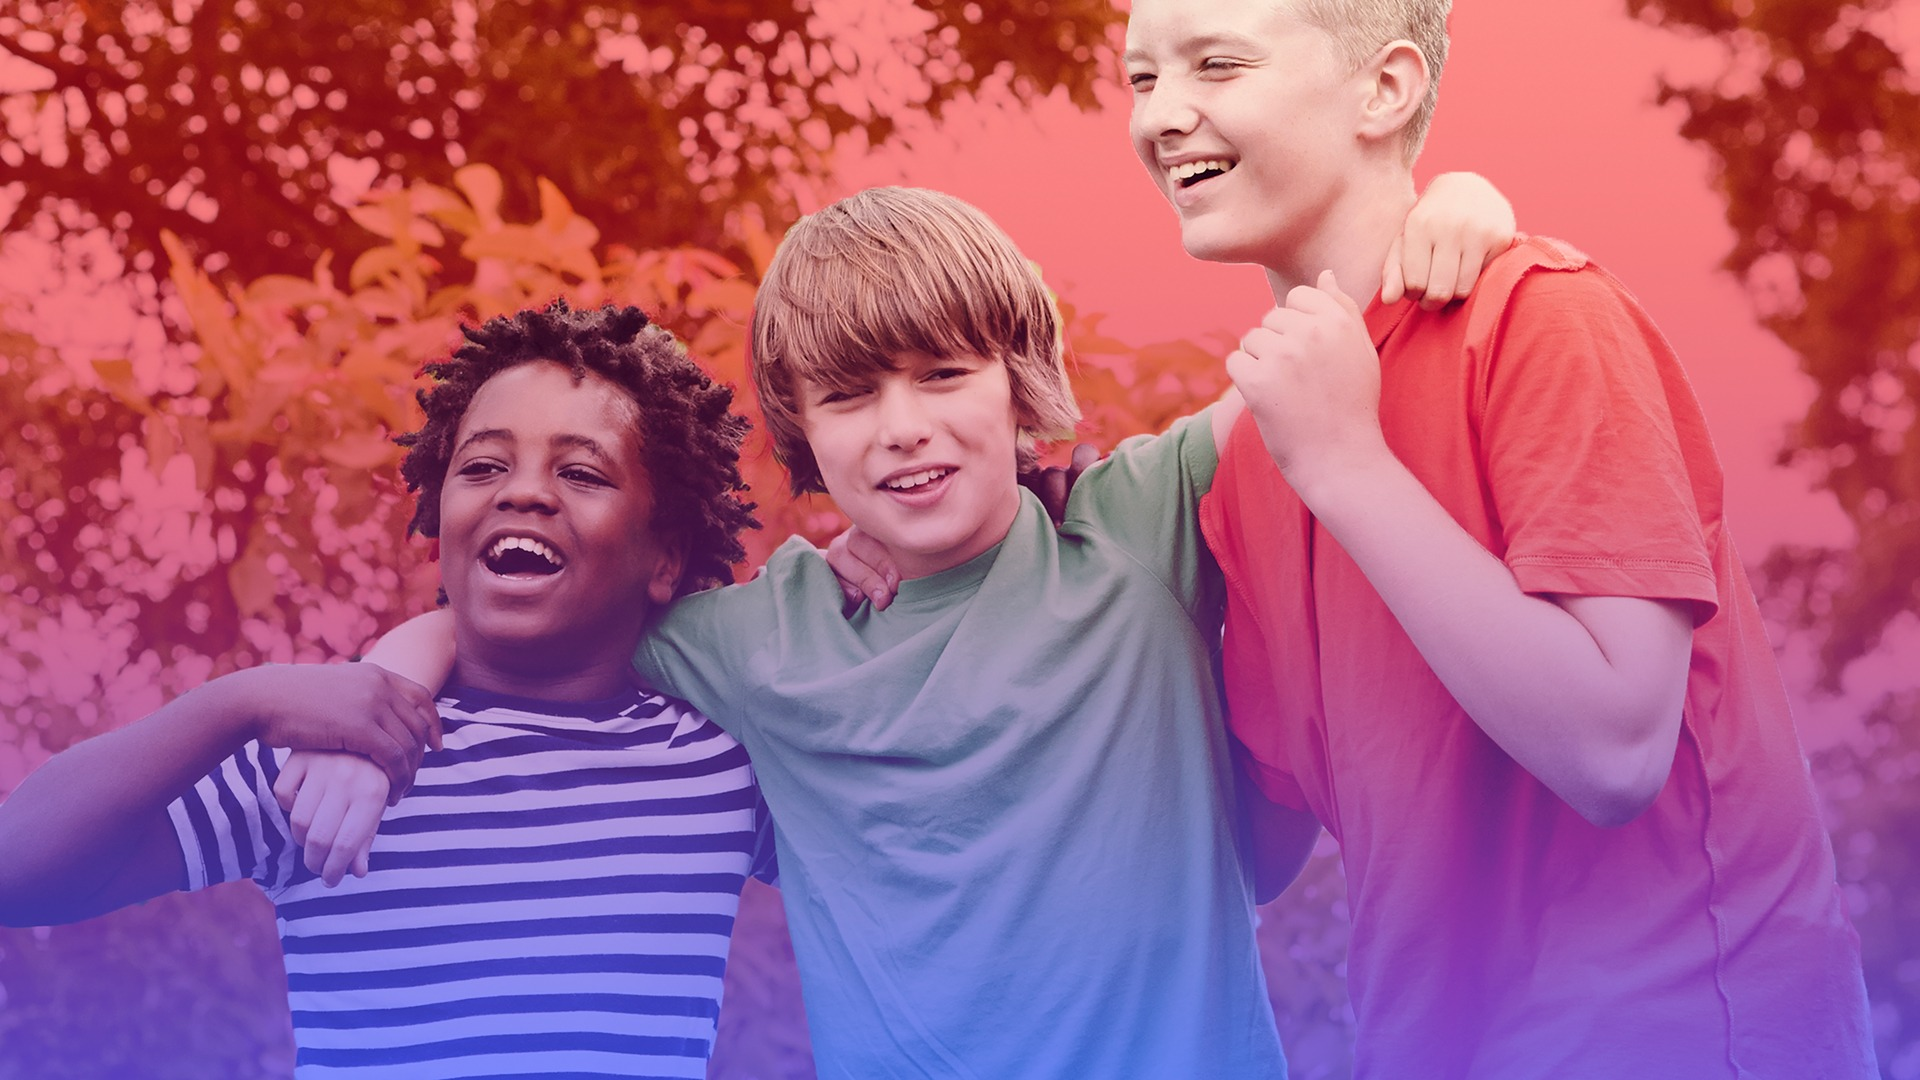 White Kids Need to Start Using Their Privilege for Good  Here's How to Teach Them